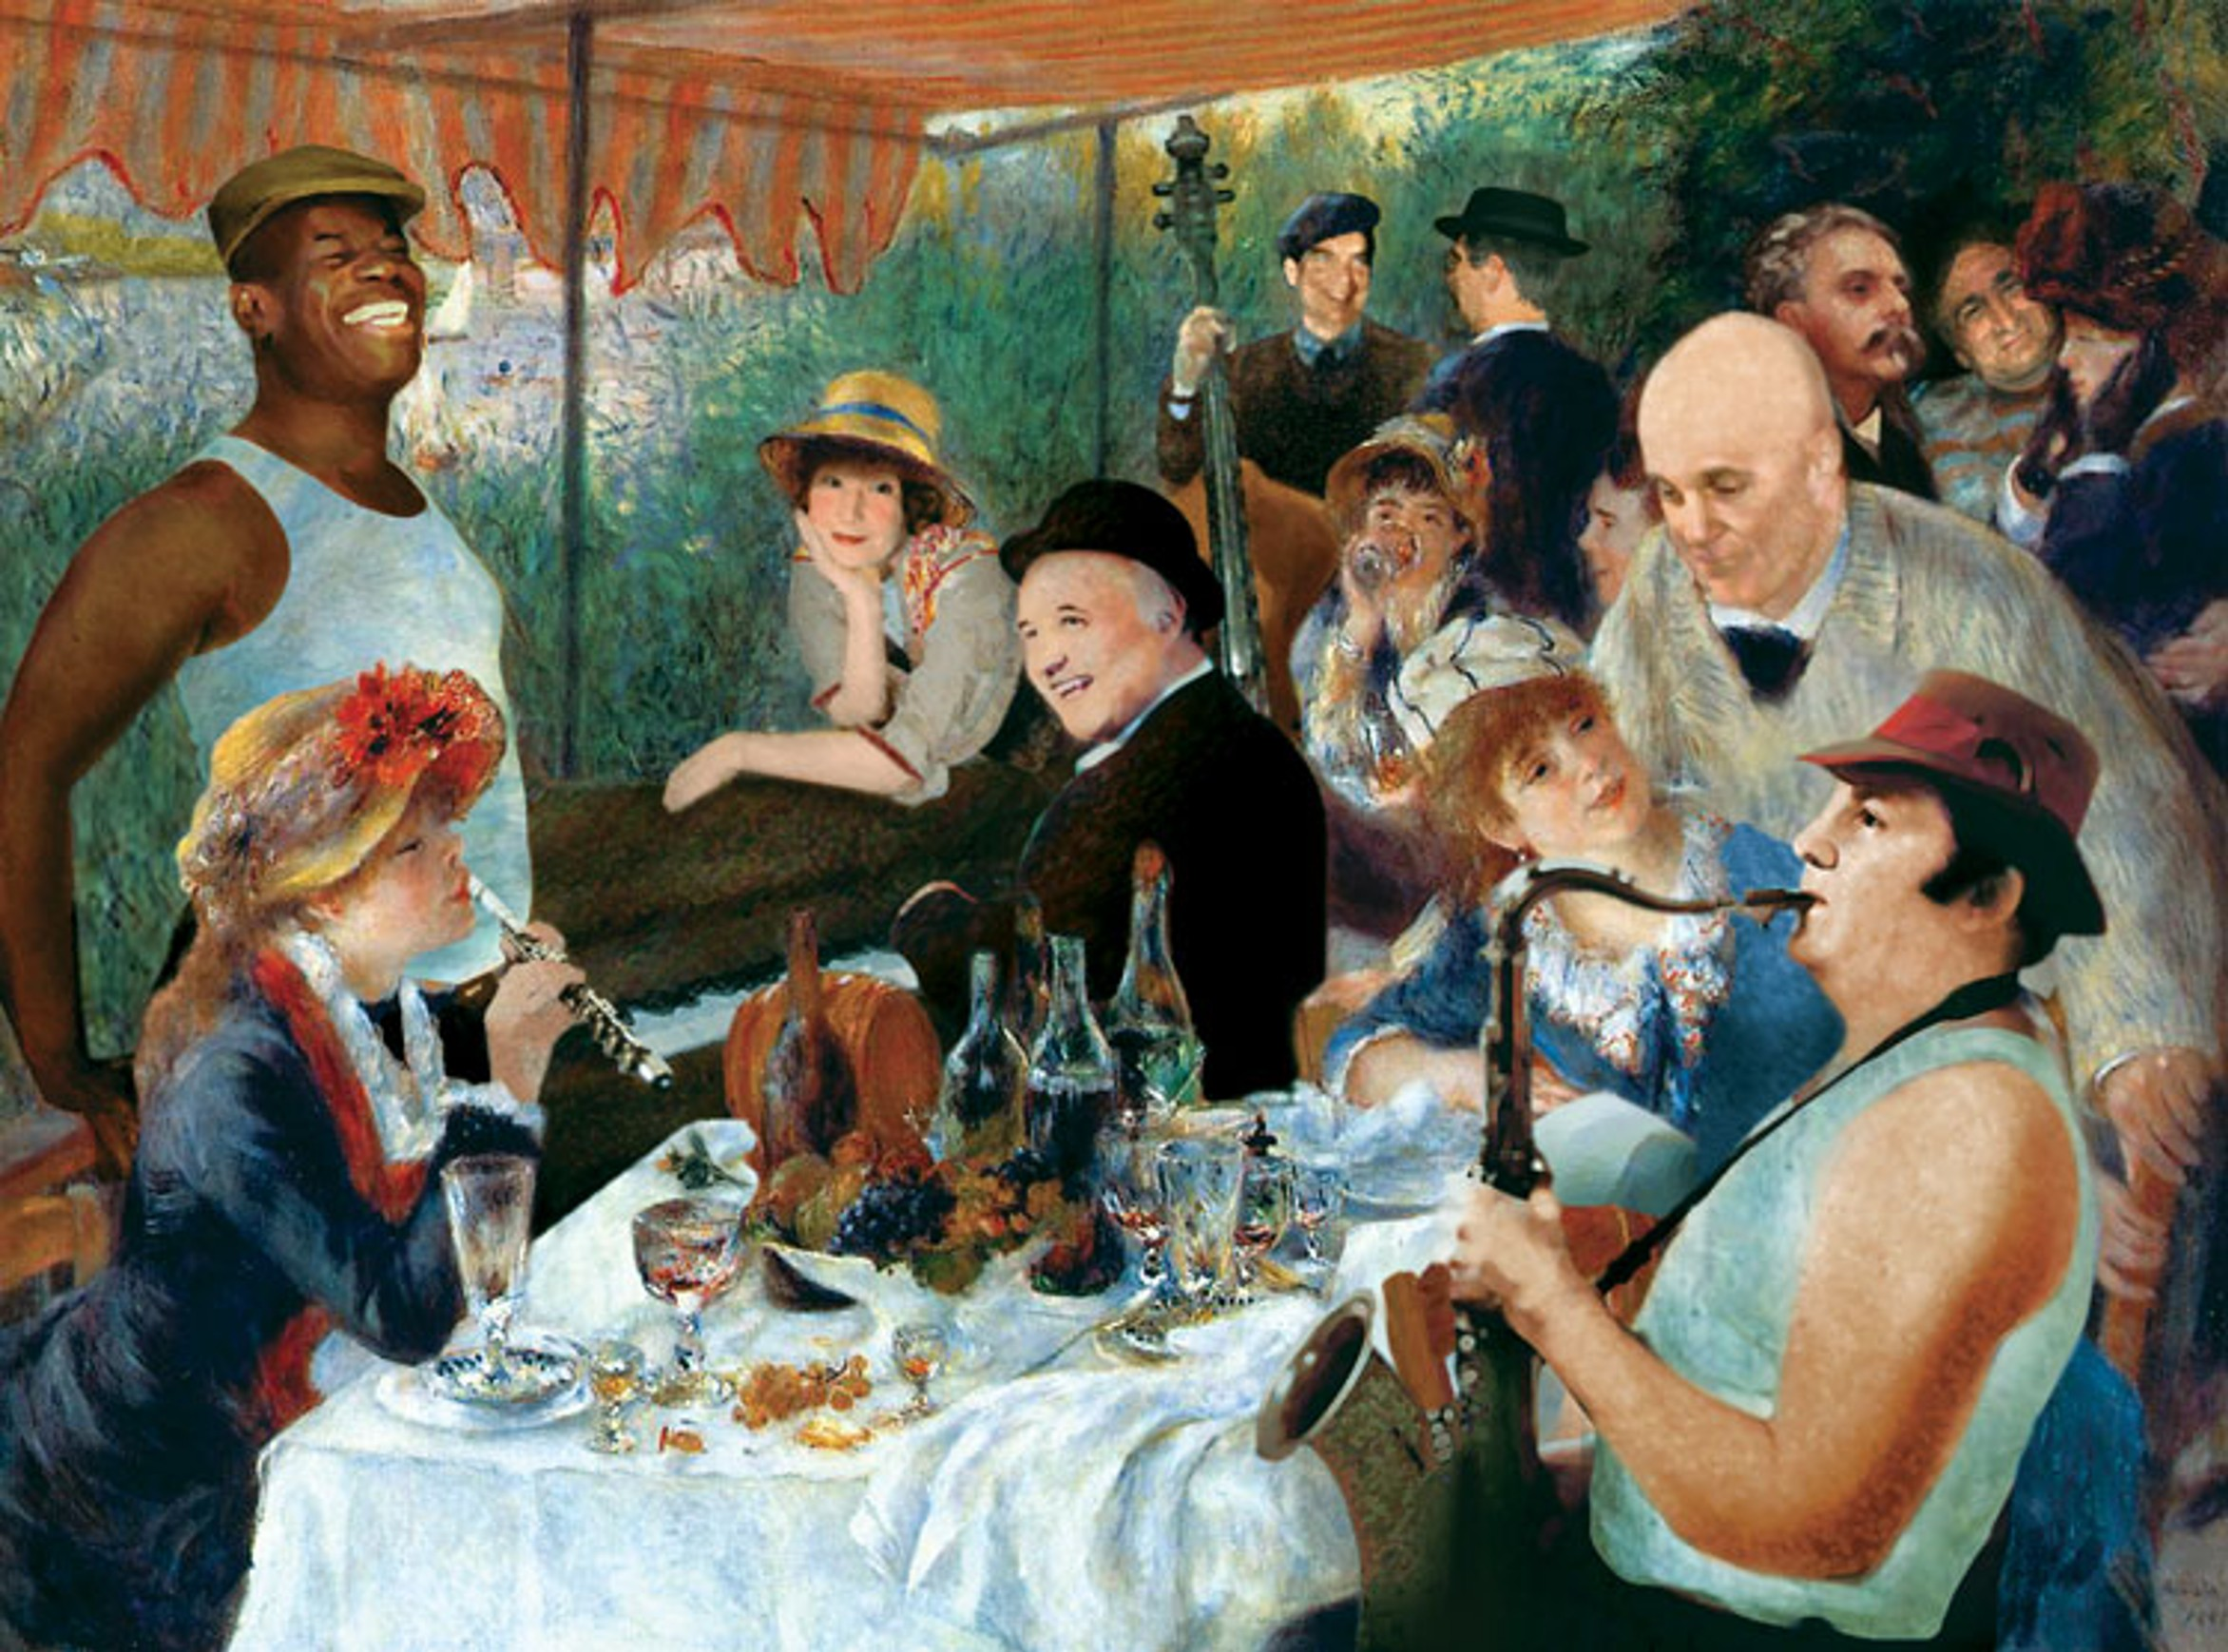 the Jazz Renoir version